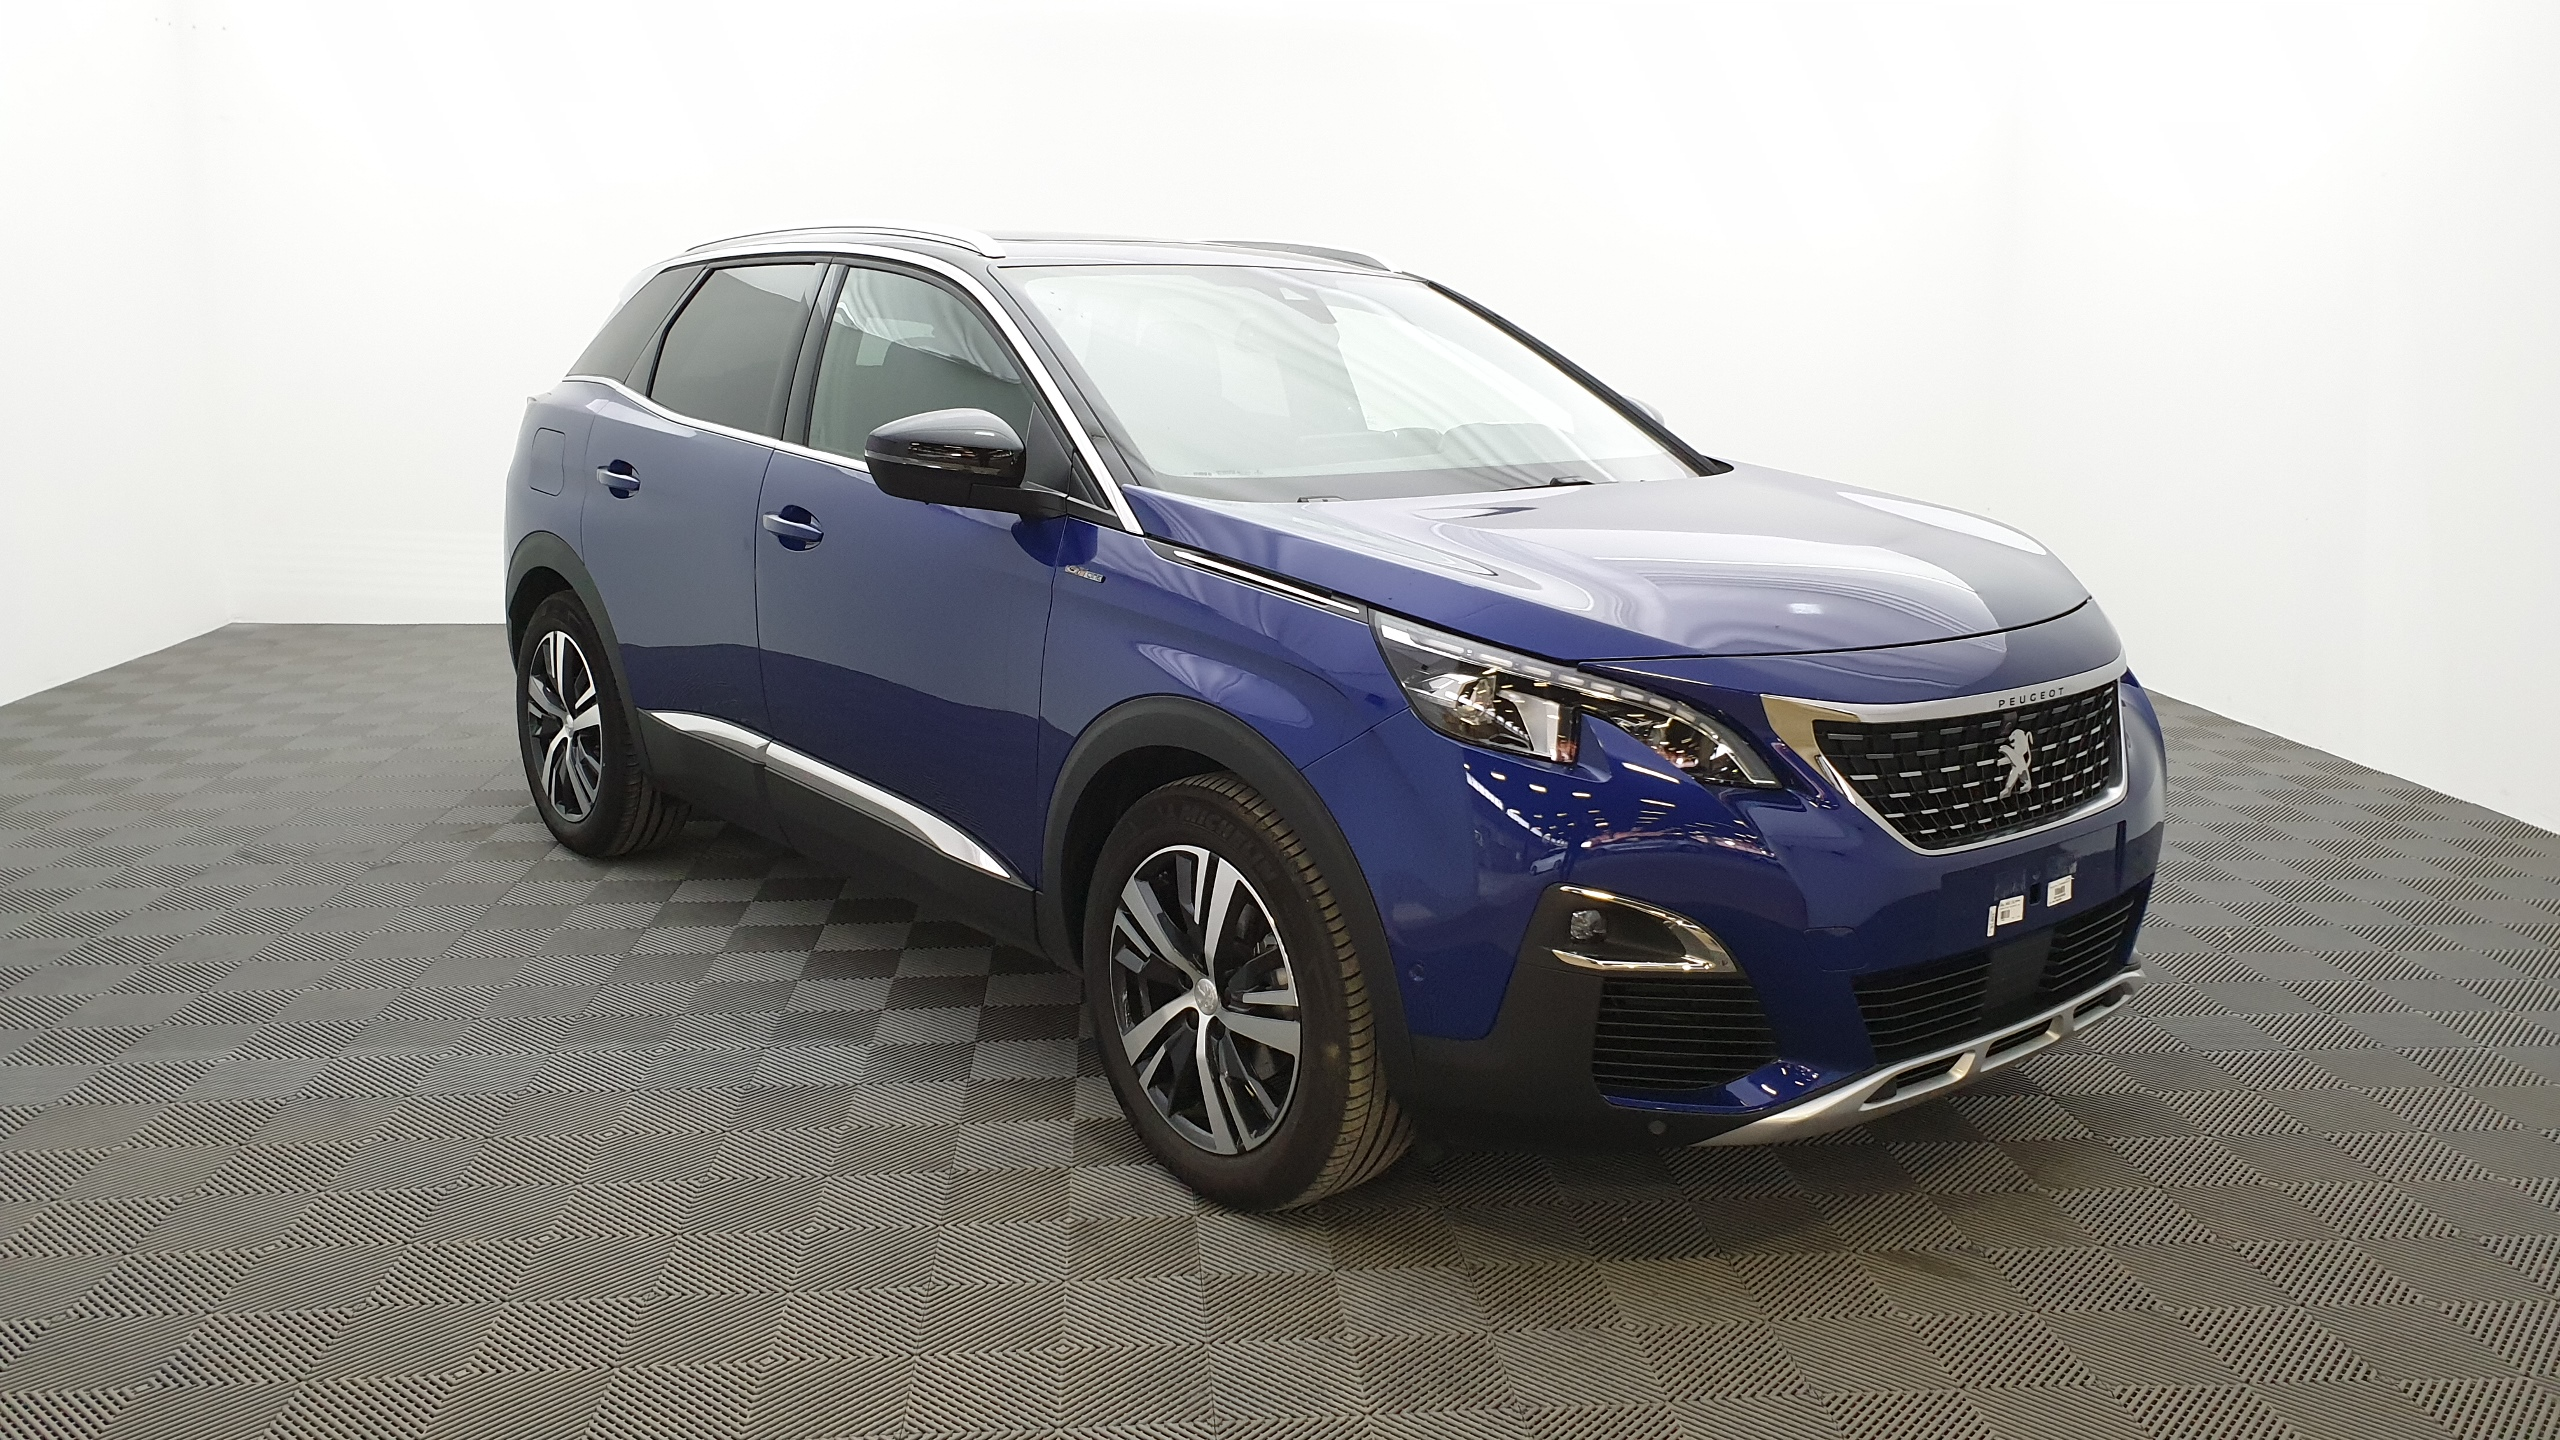 Photo annonce PEUGEOT 3008 1.5 BLUEHDI 130CV EAT8 GT LINE + TOIT PANO + PACK CITY 2 + PACK CUIR NAPPA